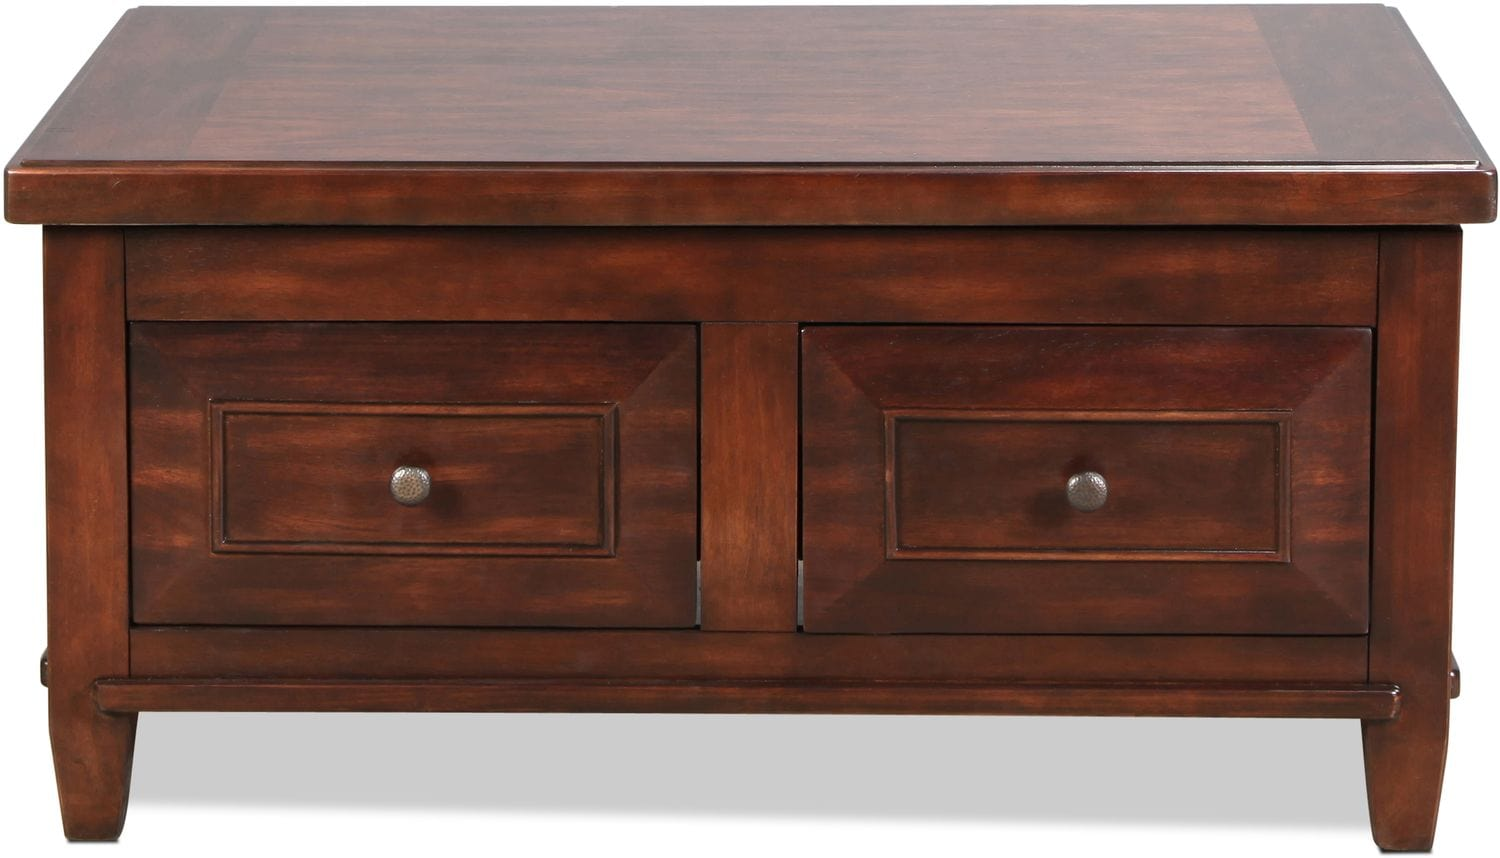 Accent and Occasional Furniture - Bentworth Lift-Top Coffee Table - Rustic Brown